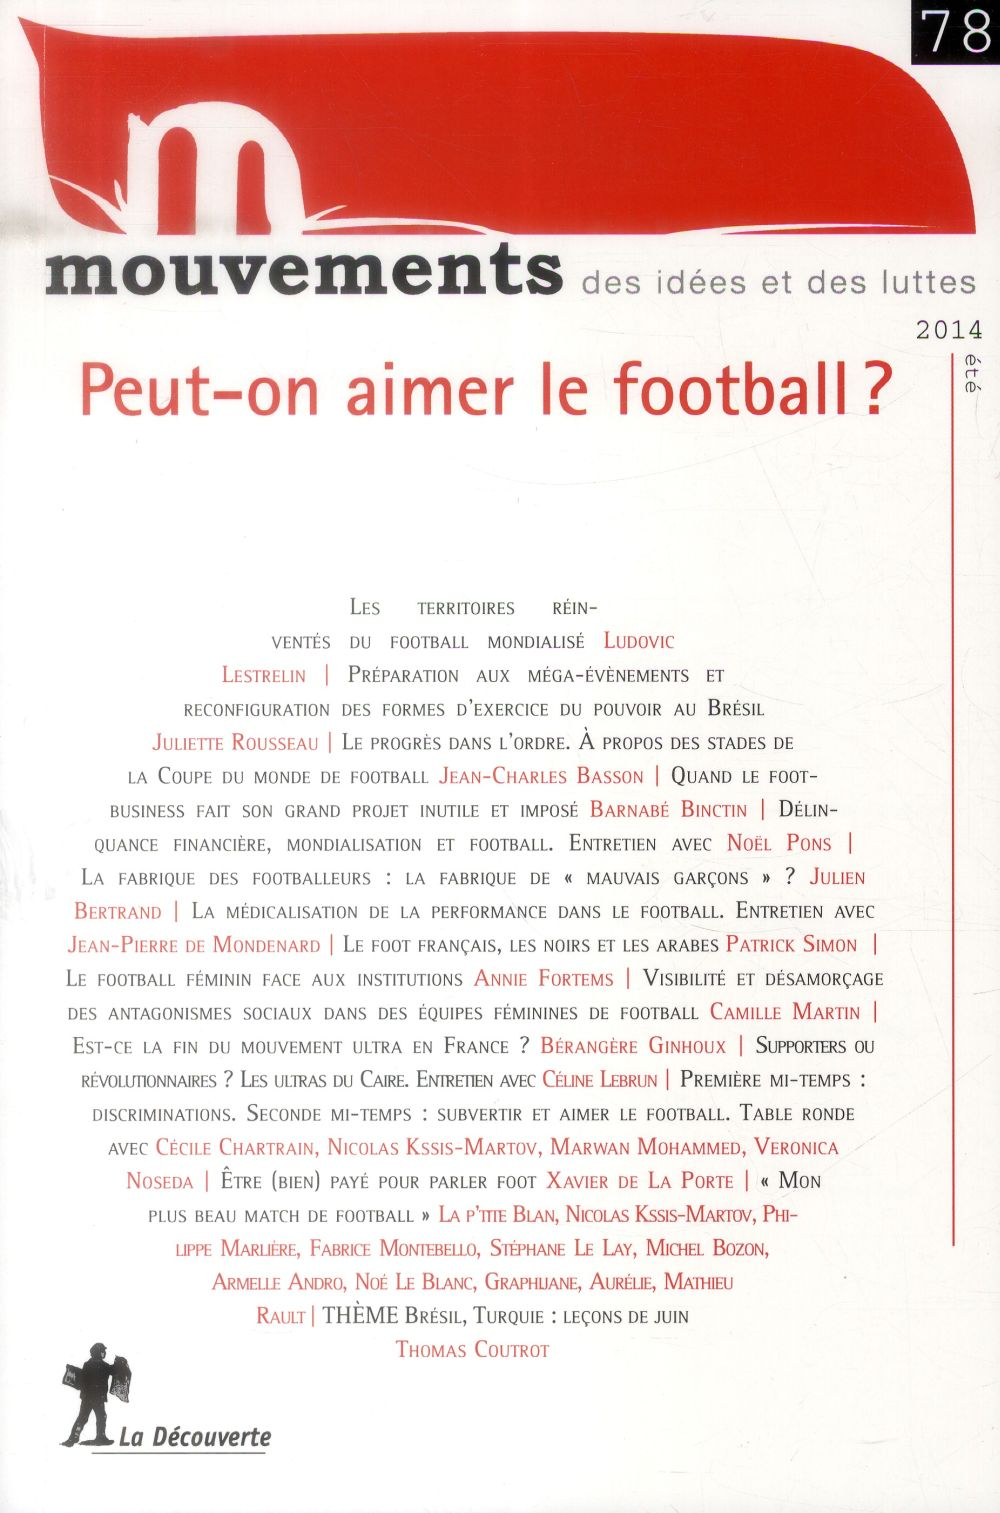 REVUE MOUVEMENTS NUMERO 78 PEUT-ON AIMER LE FOOTBALL ?